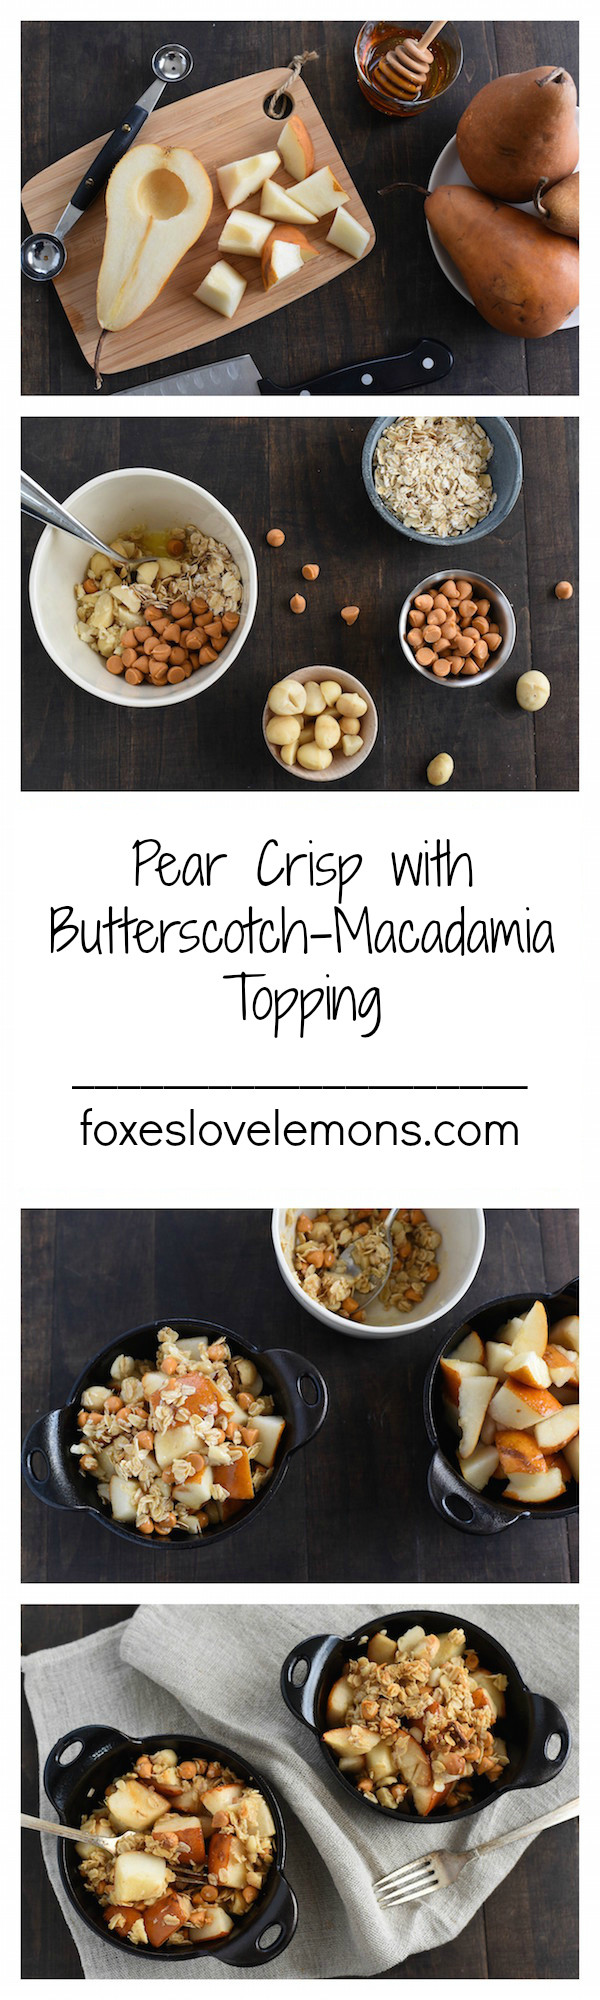 Pear Crisp with Butterscotch-Macadamia Topping - An incredibly simple dessert to have in your back pocket for whenever a sweet tooth strikes!   foxeslovelemons.com